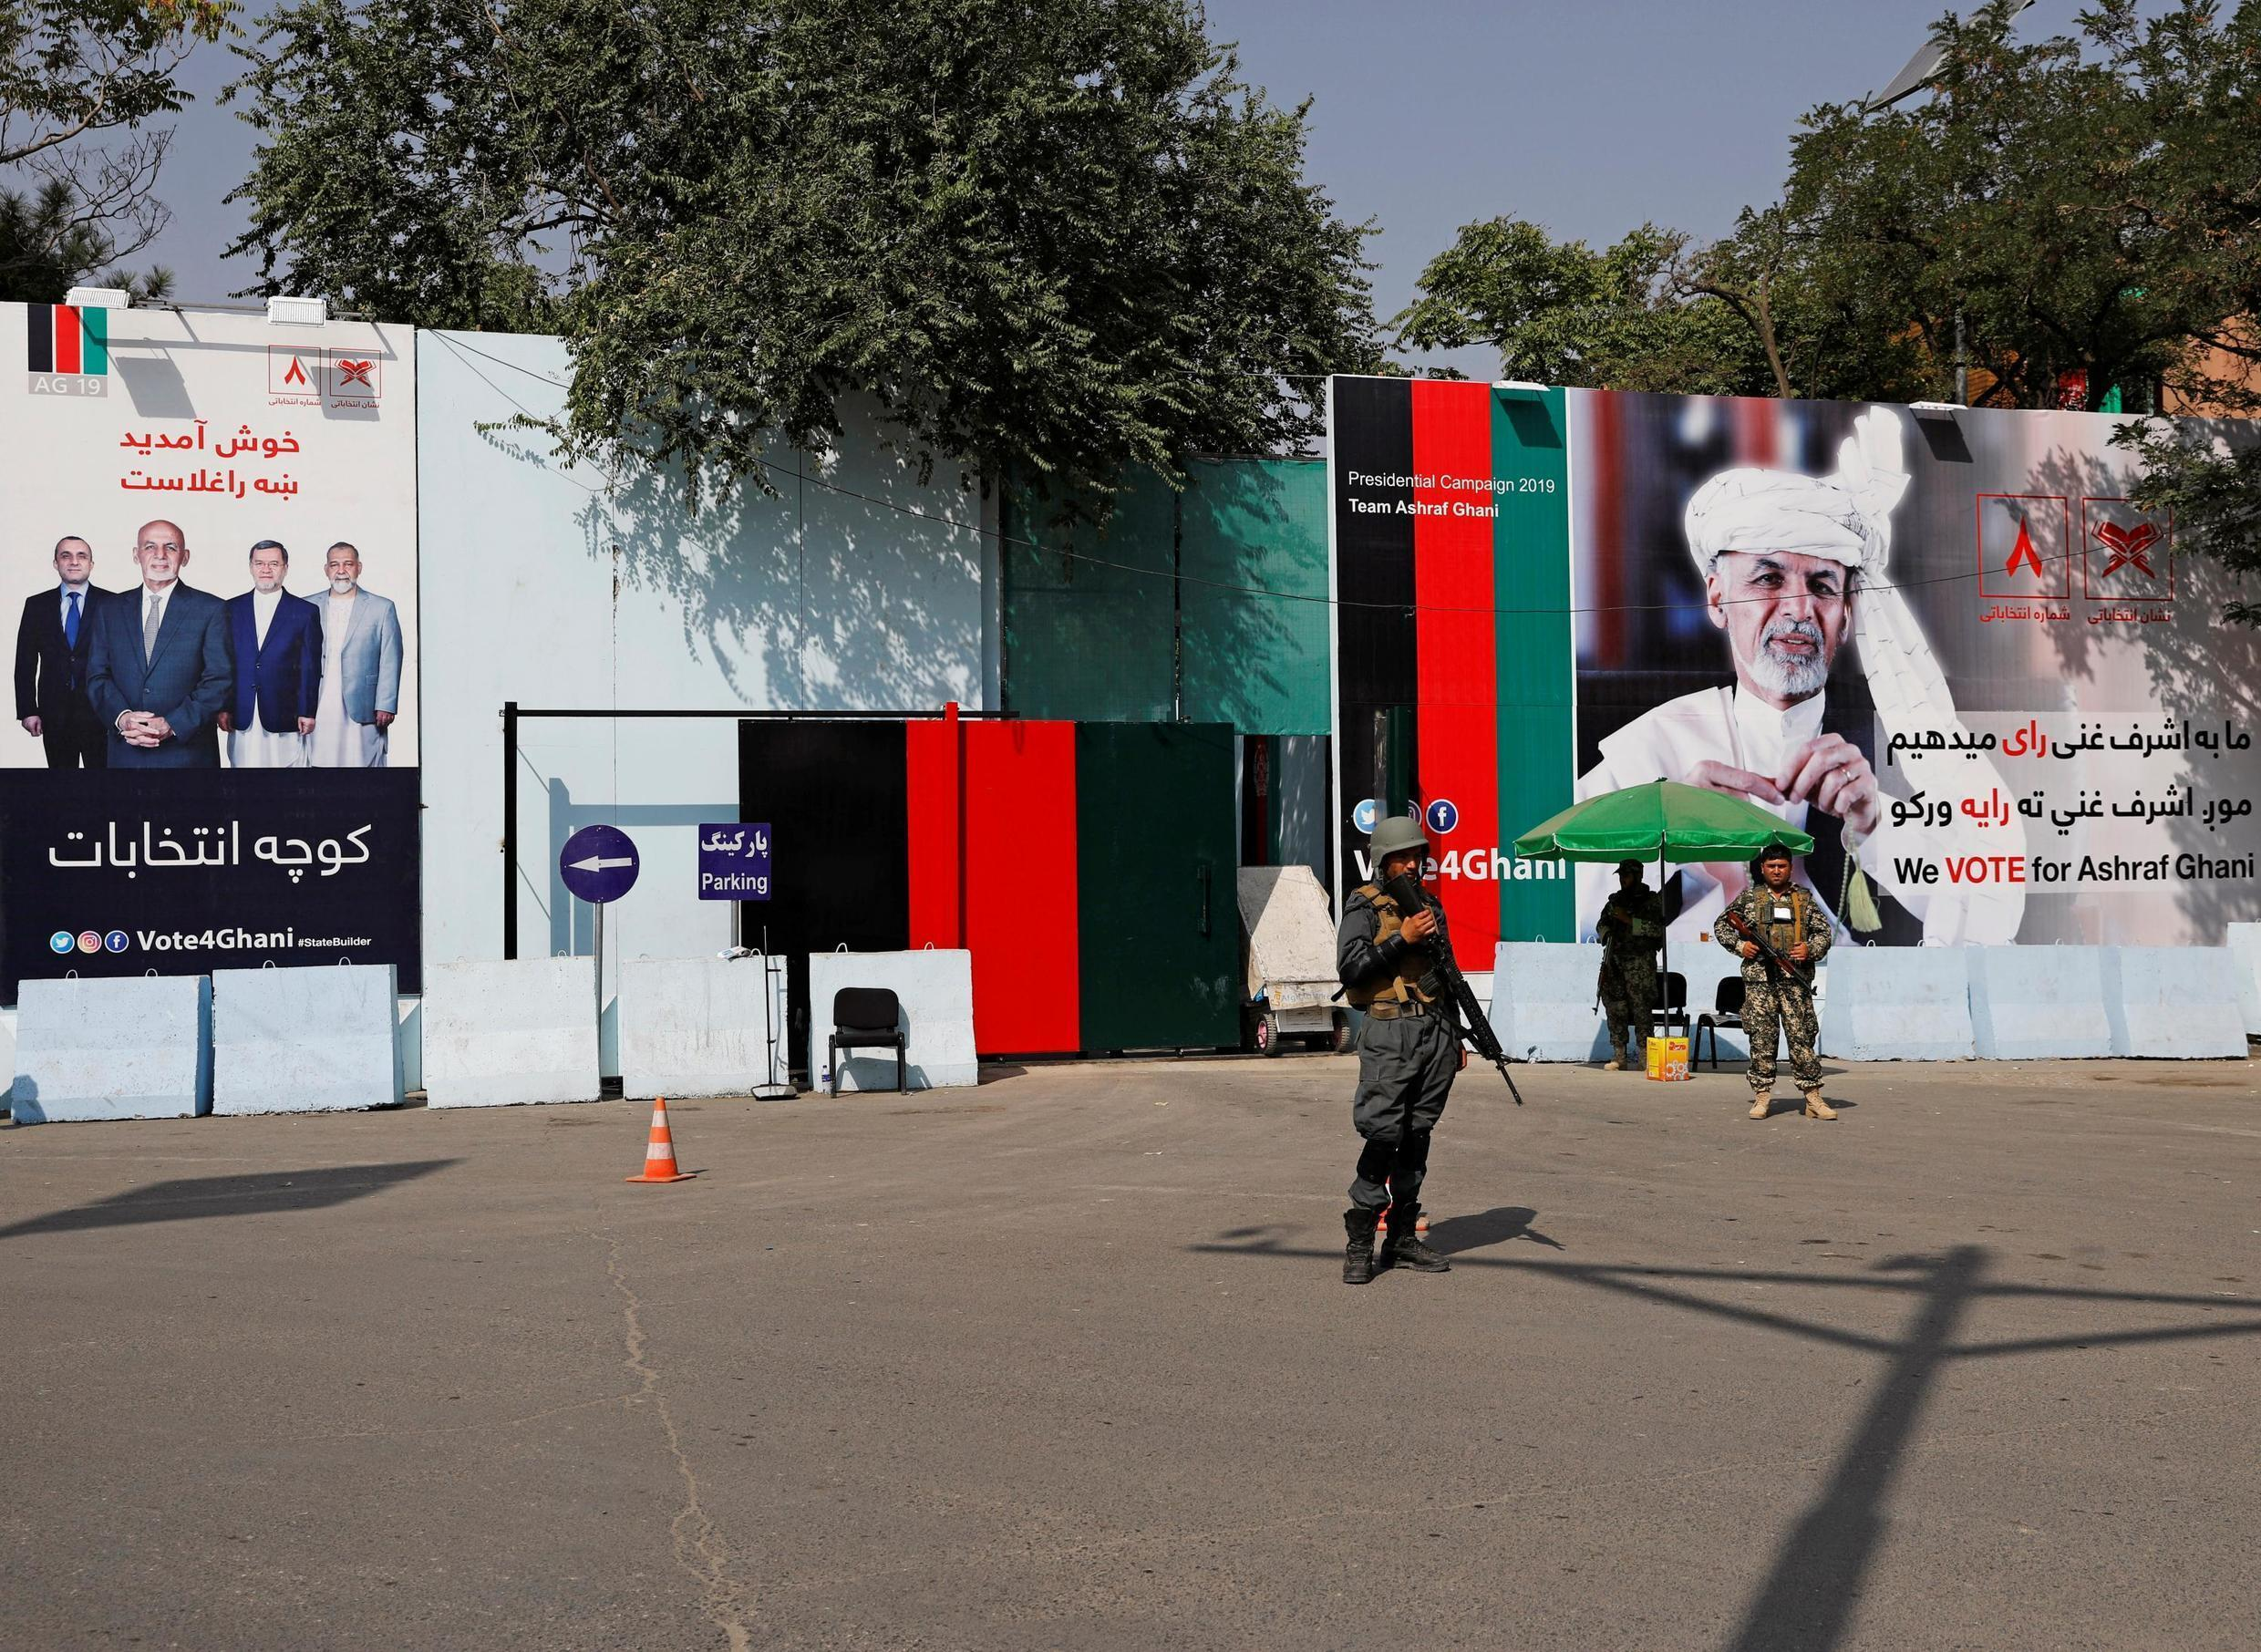 Security forces stand in front of posters of Afghan presidential candidate Ashraf Ghani in Kabul, Afghanistan, on 2 September, 2019.